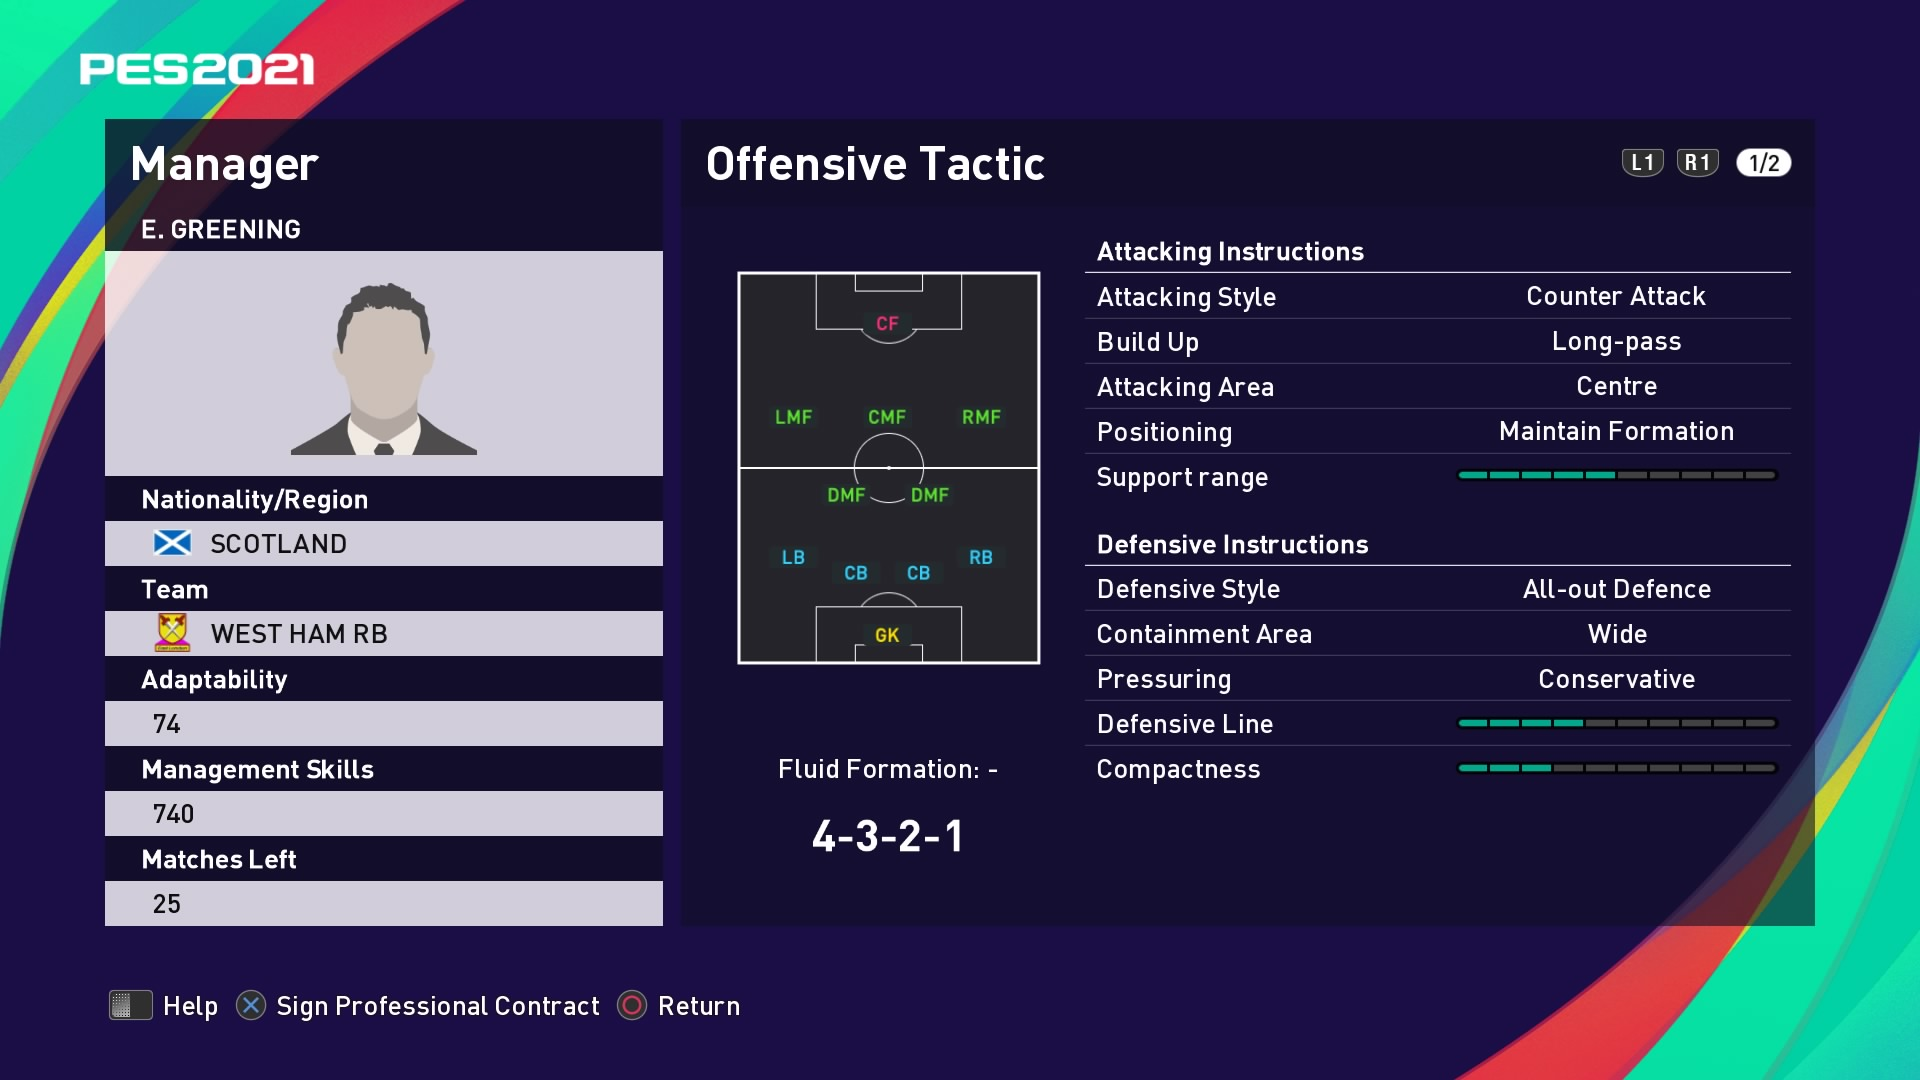 E. Greening (David Moyes) Offensive Tactic in PES 2021 myClub